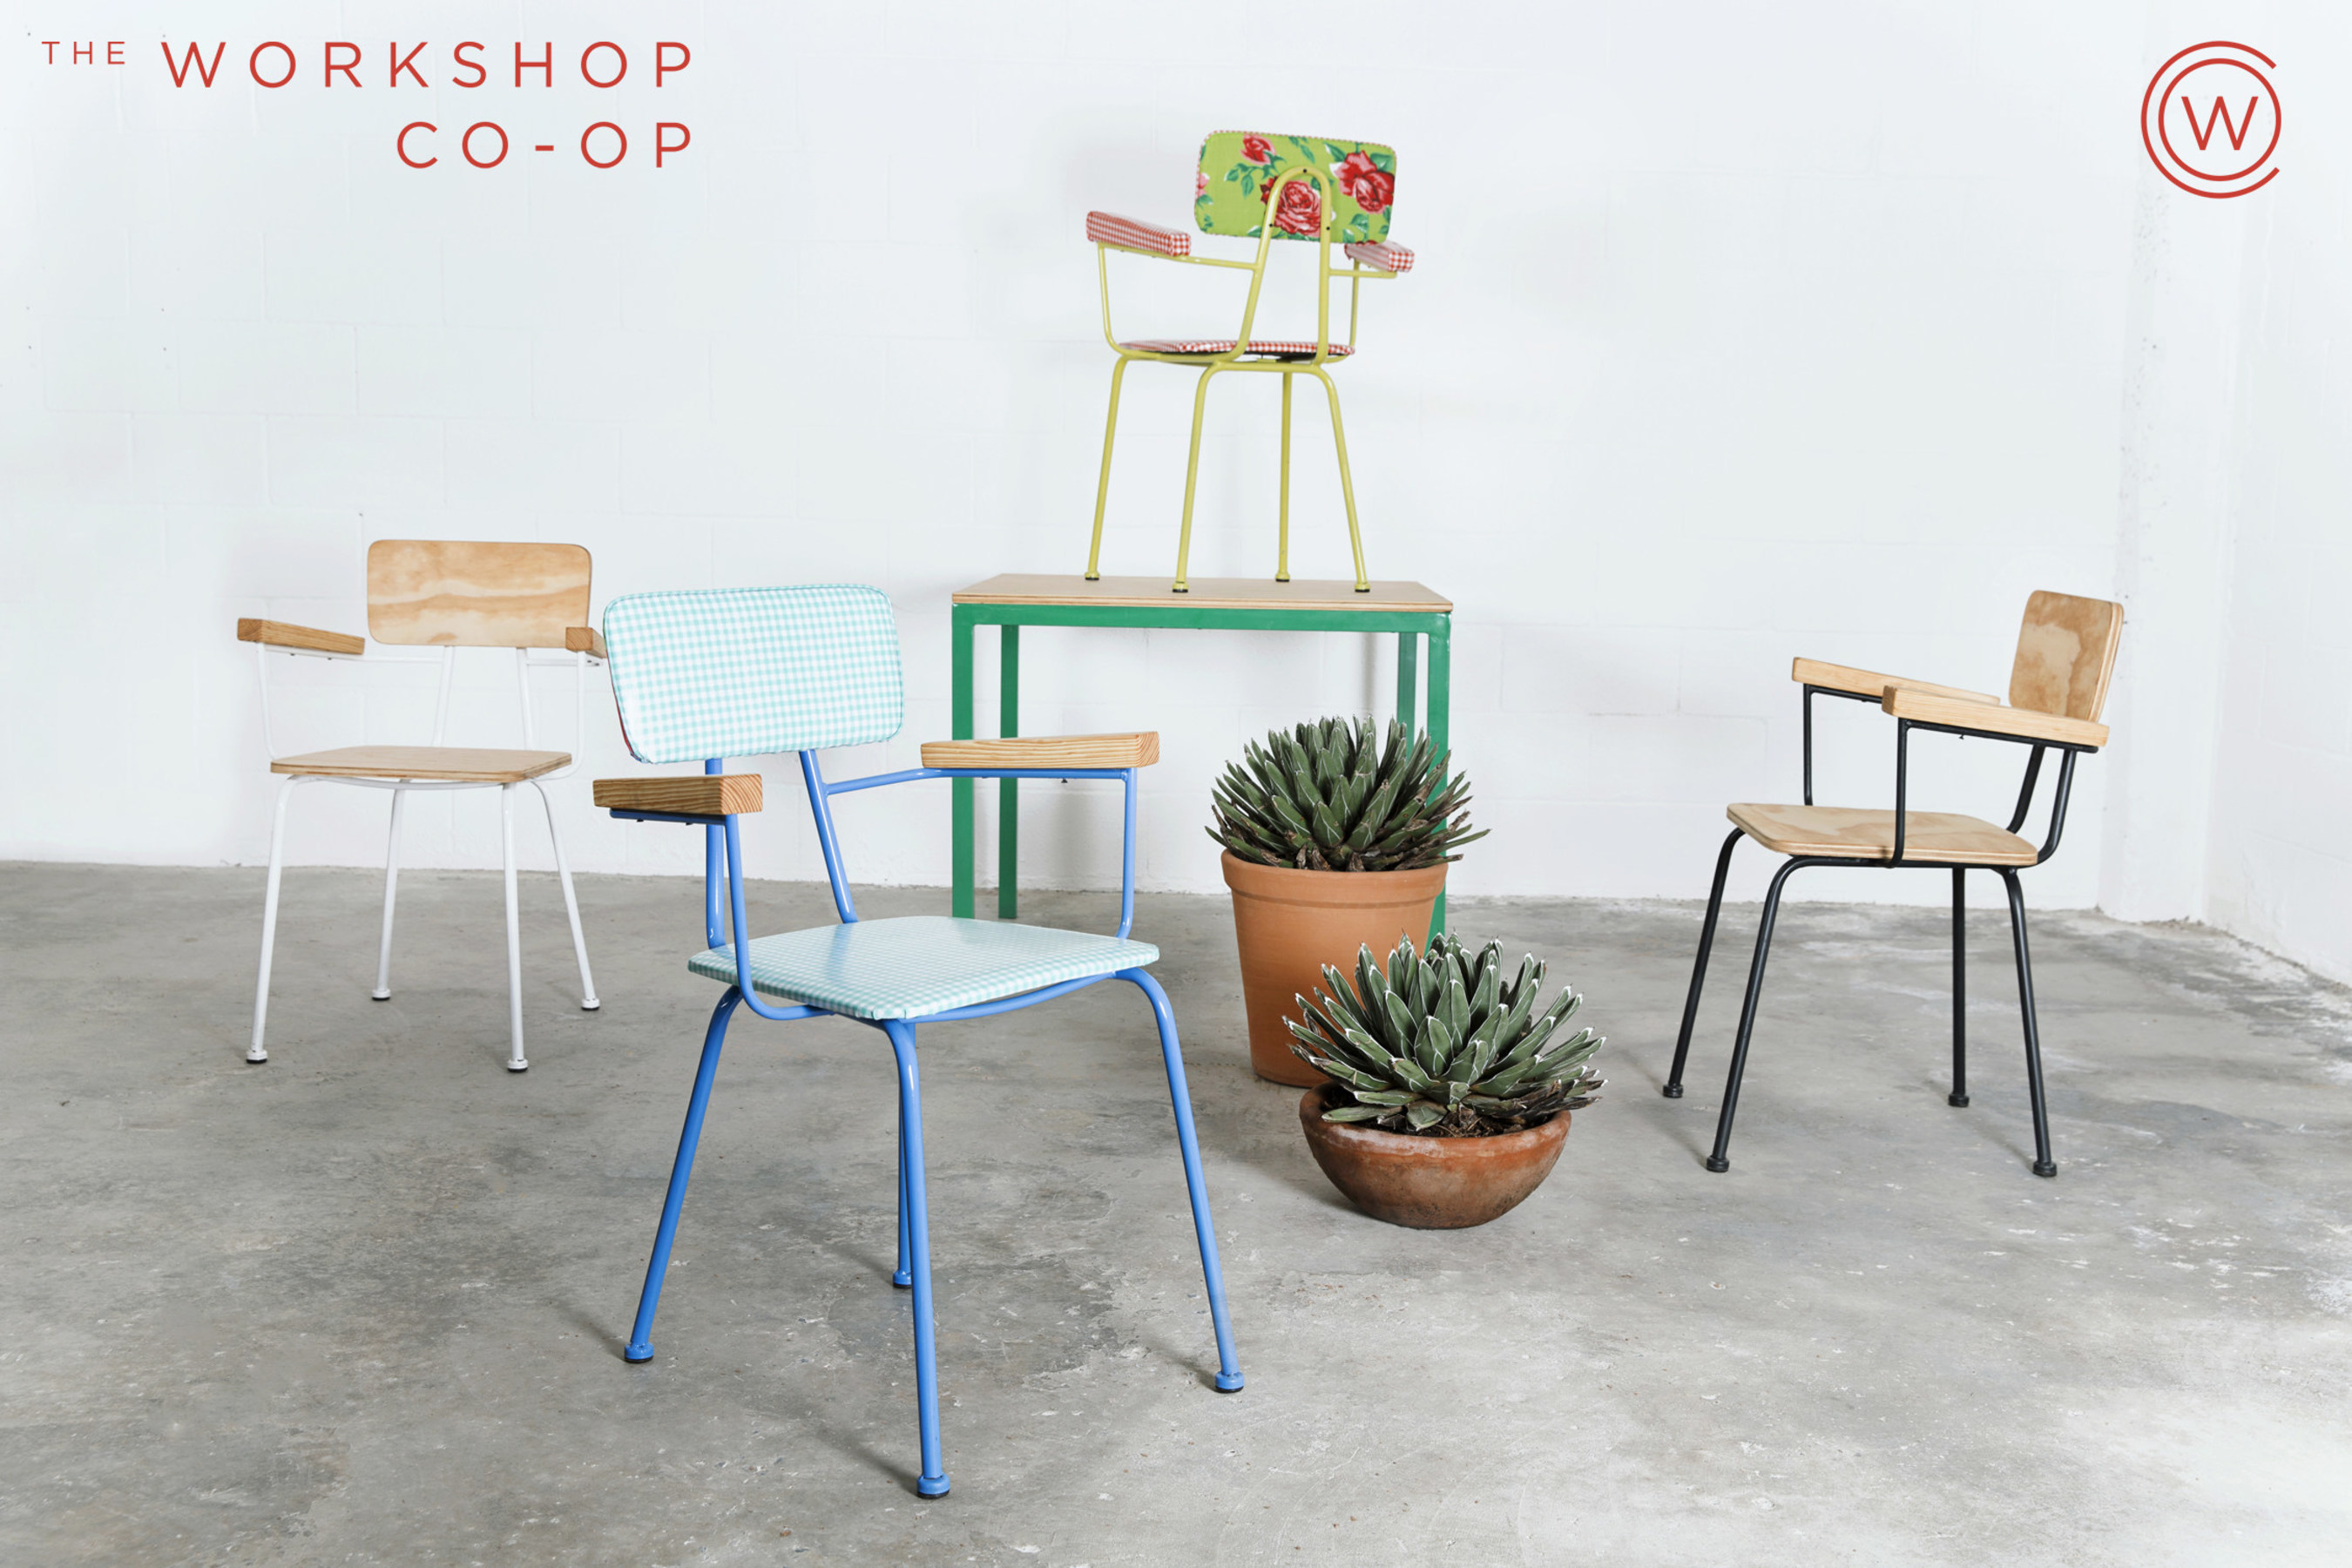 The Workshop Co-Op Launches Online, Providing Customizable Furnishings for Customers